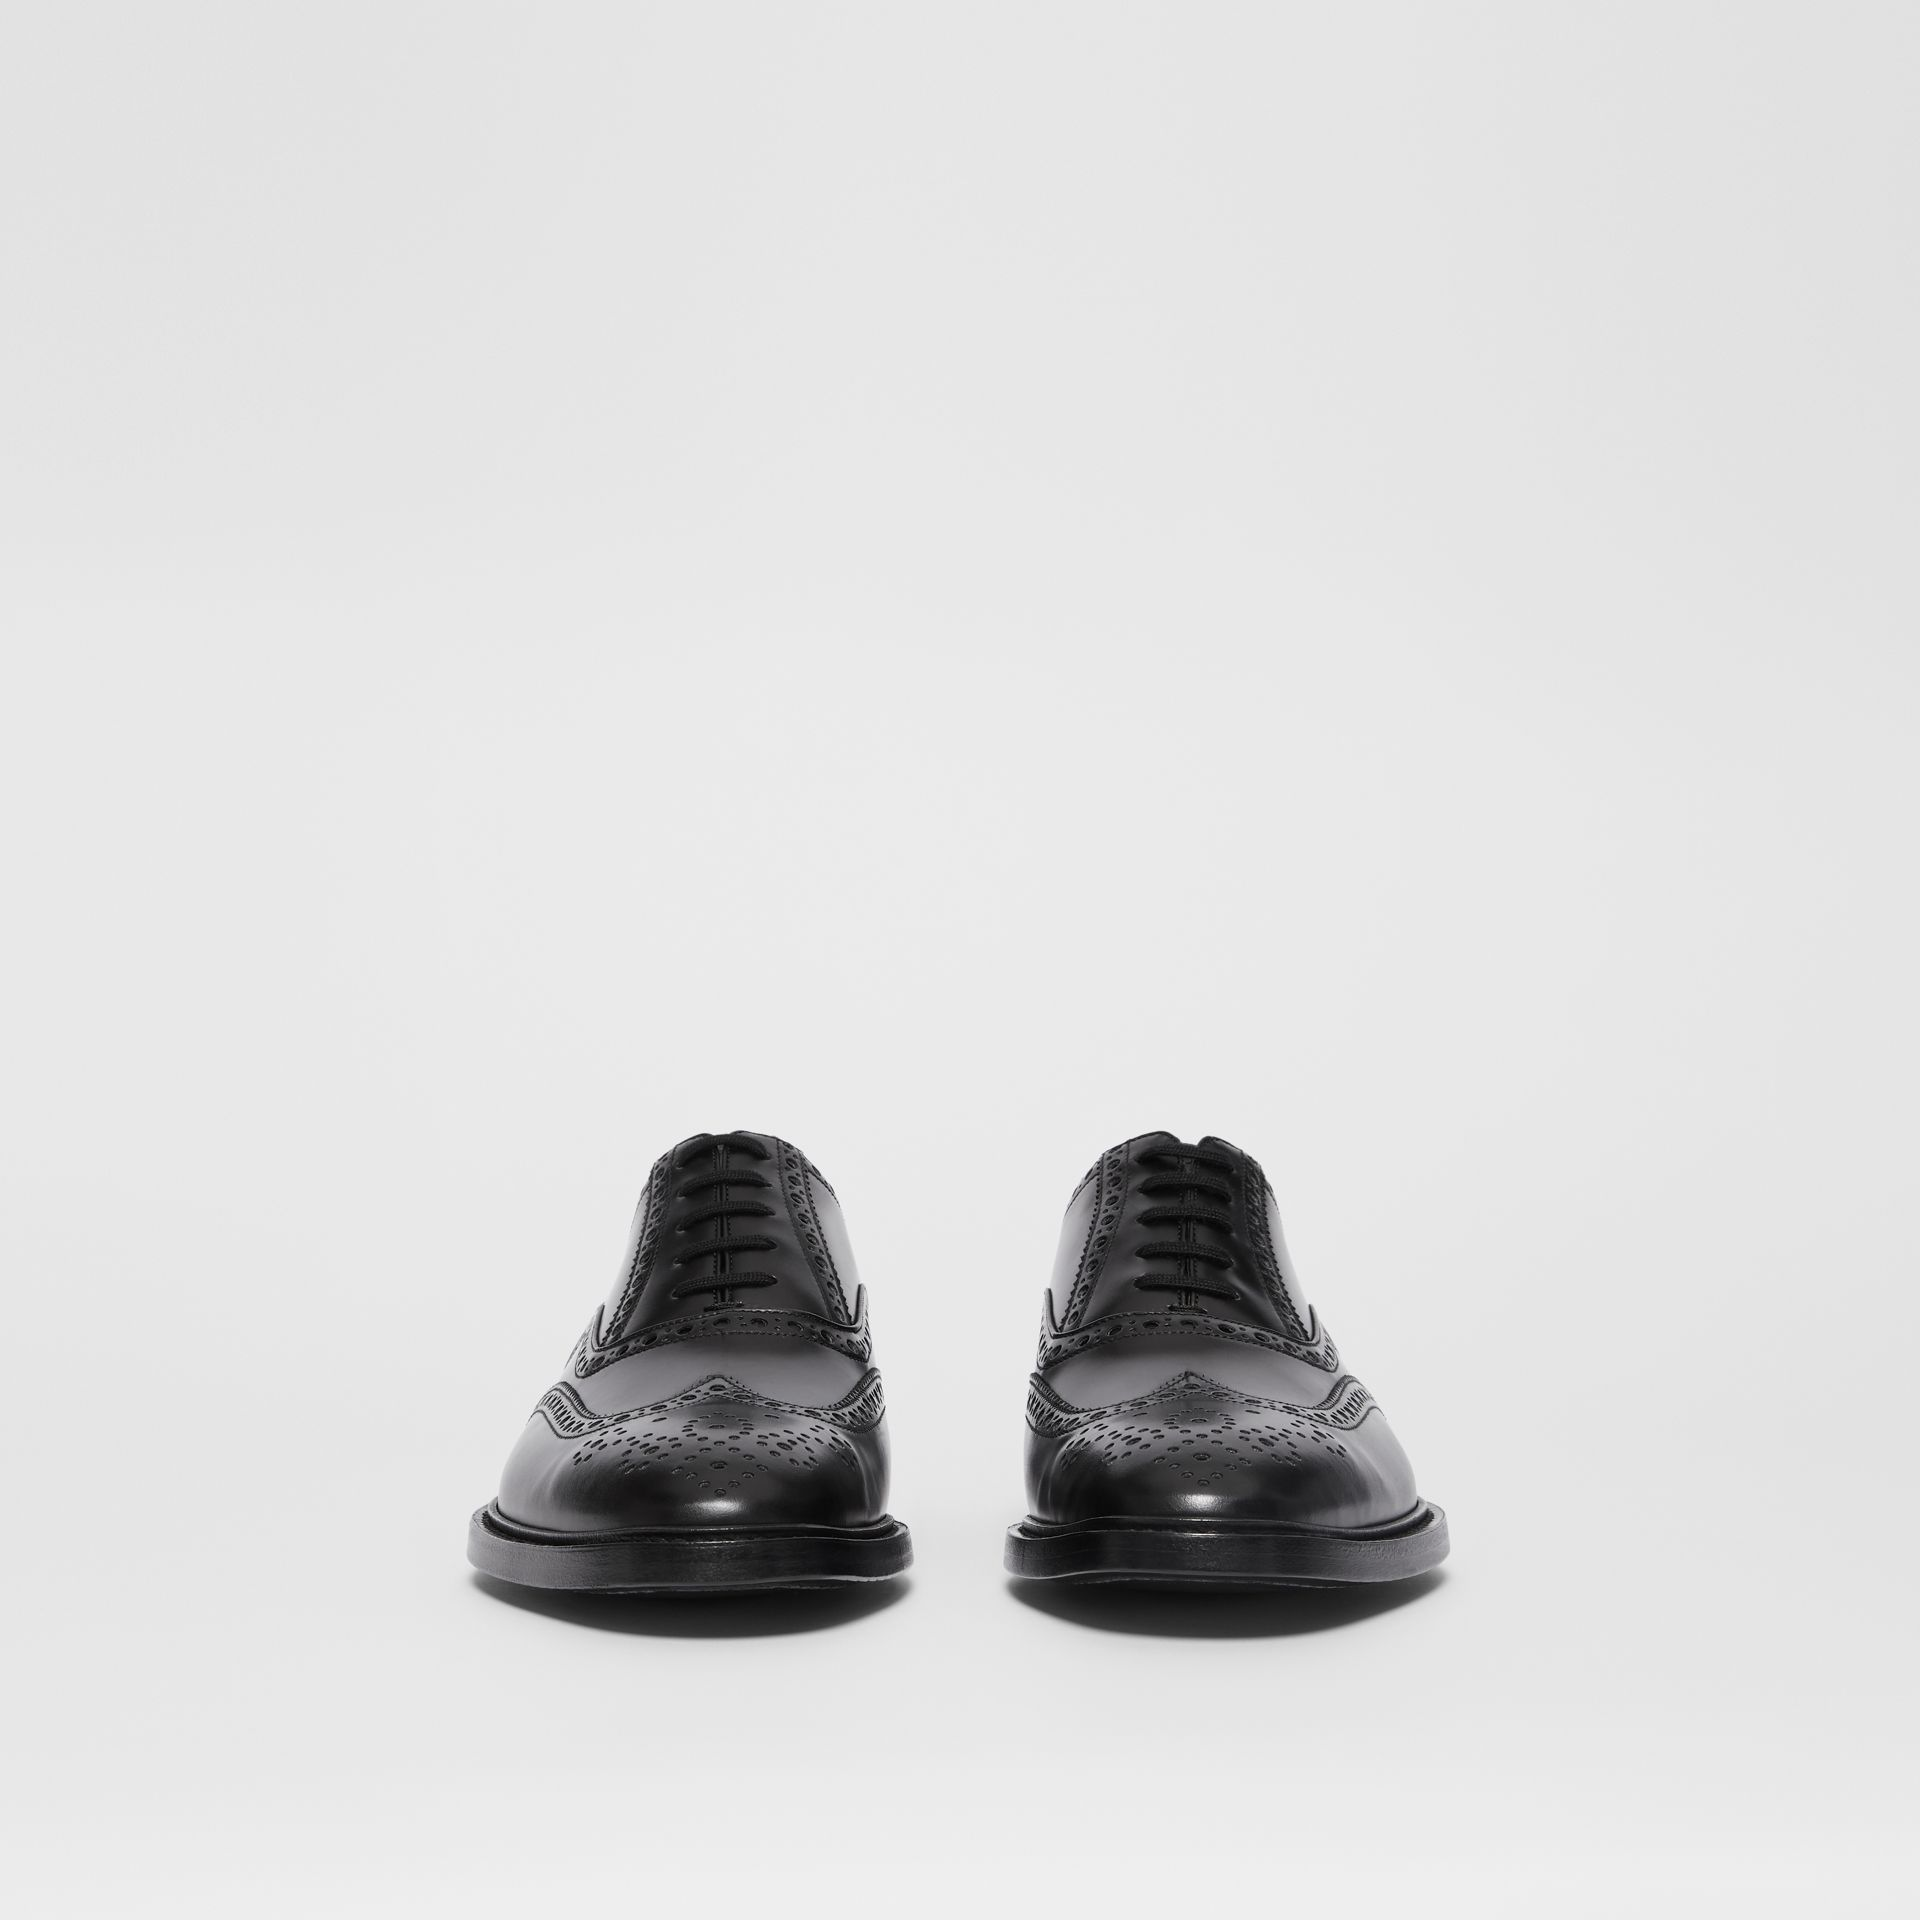 D-ring Detail Patent Leather Oxford Brogues in Black - Men | Burberry - gallery image 2